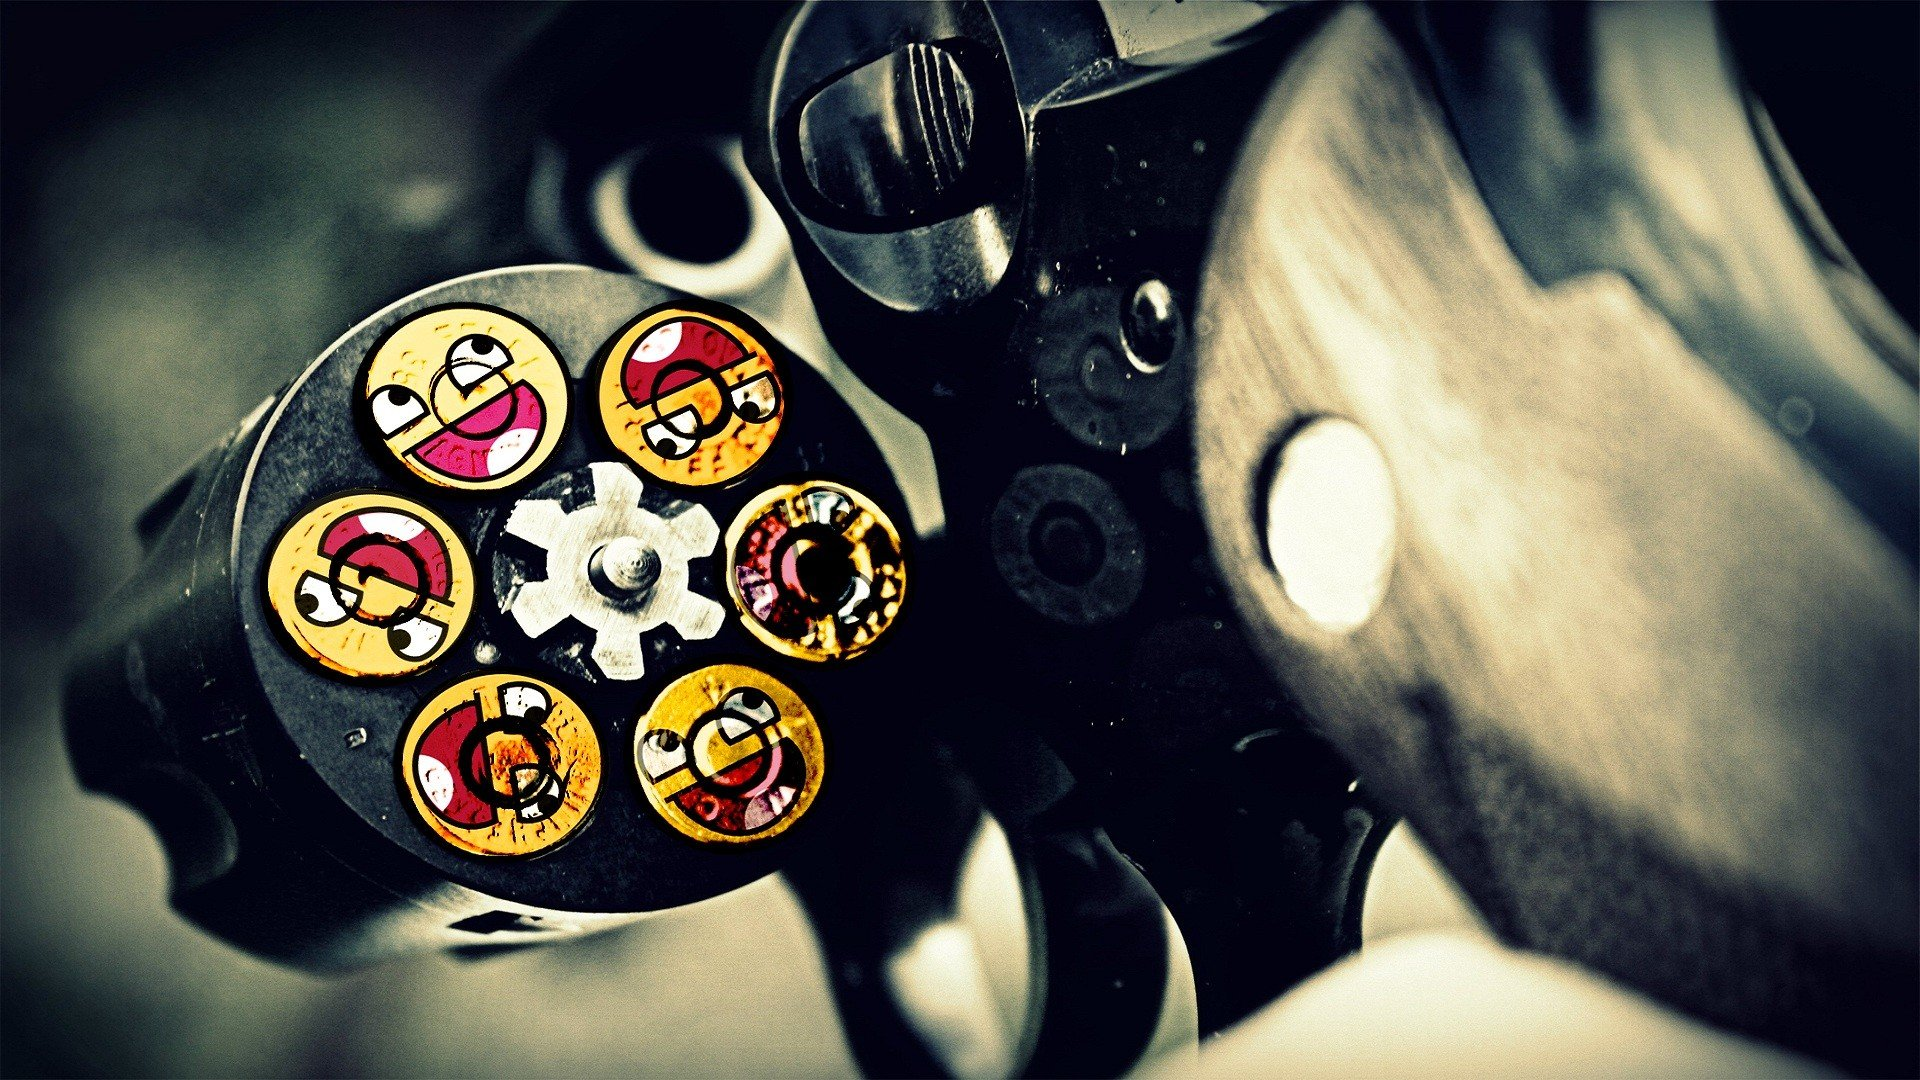 guns ammunition smiley face Awesome Face wallpaper background 1920x1080